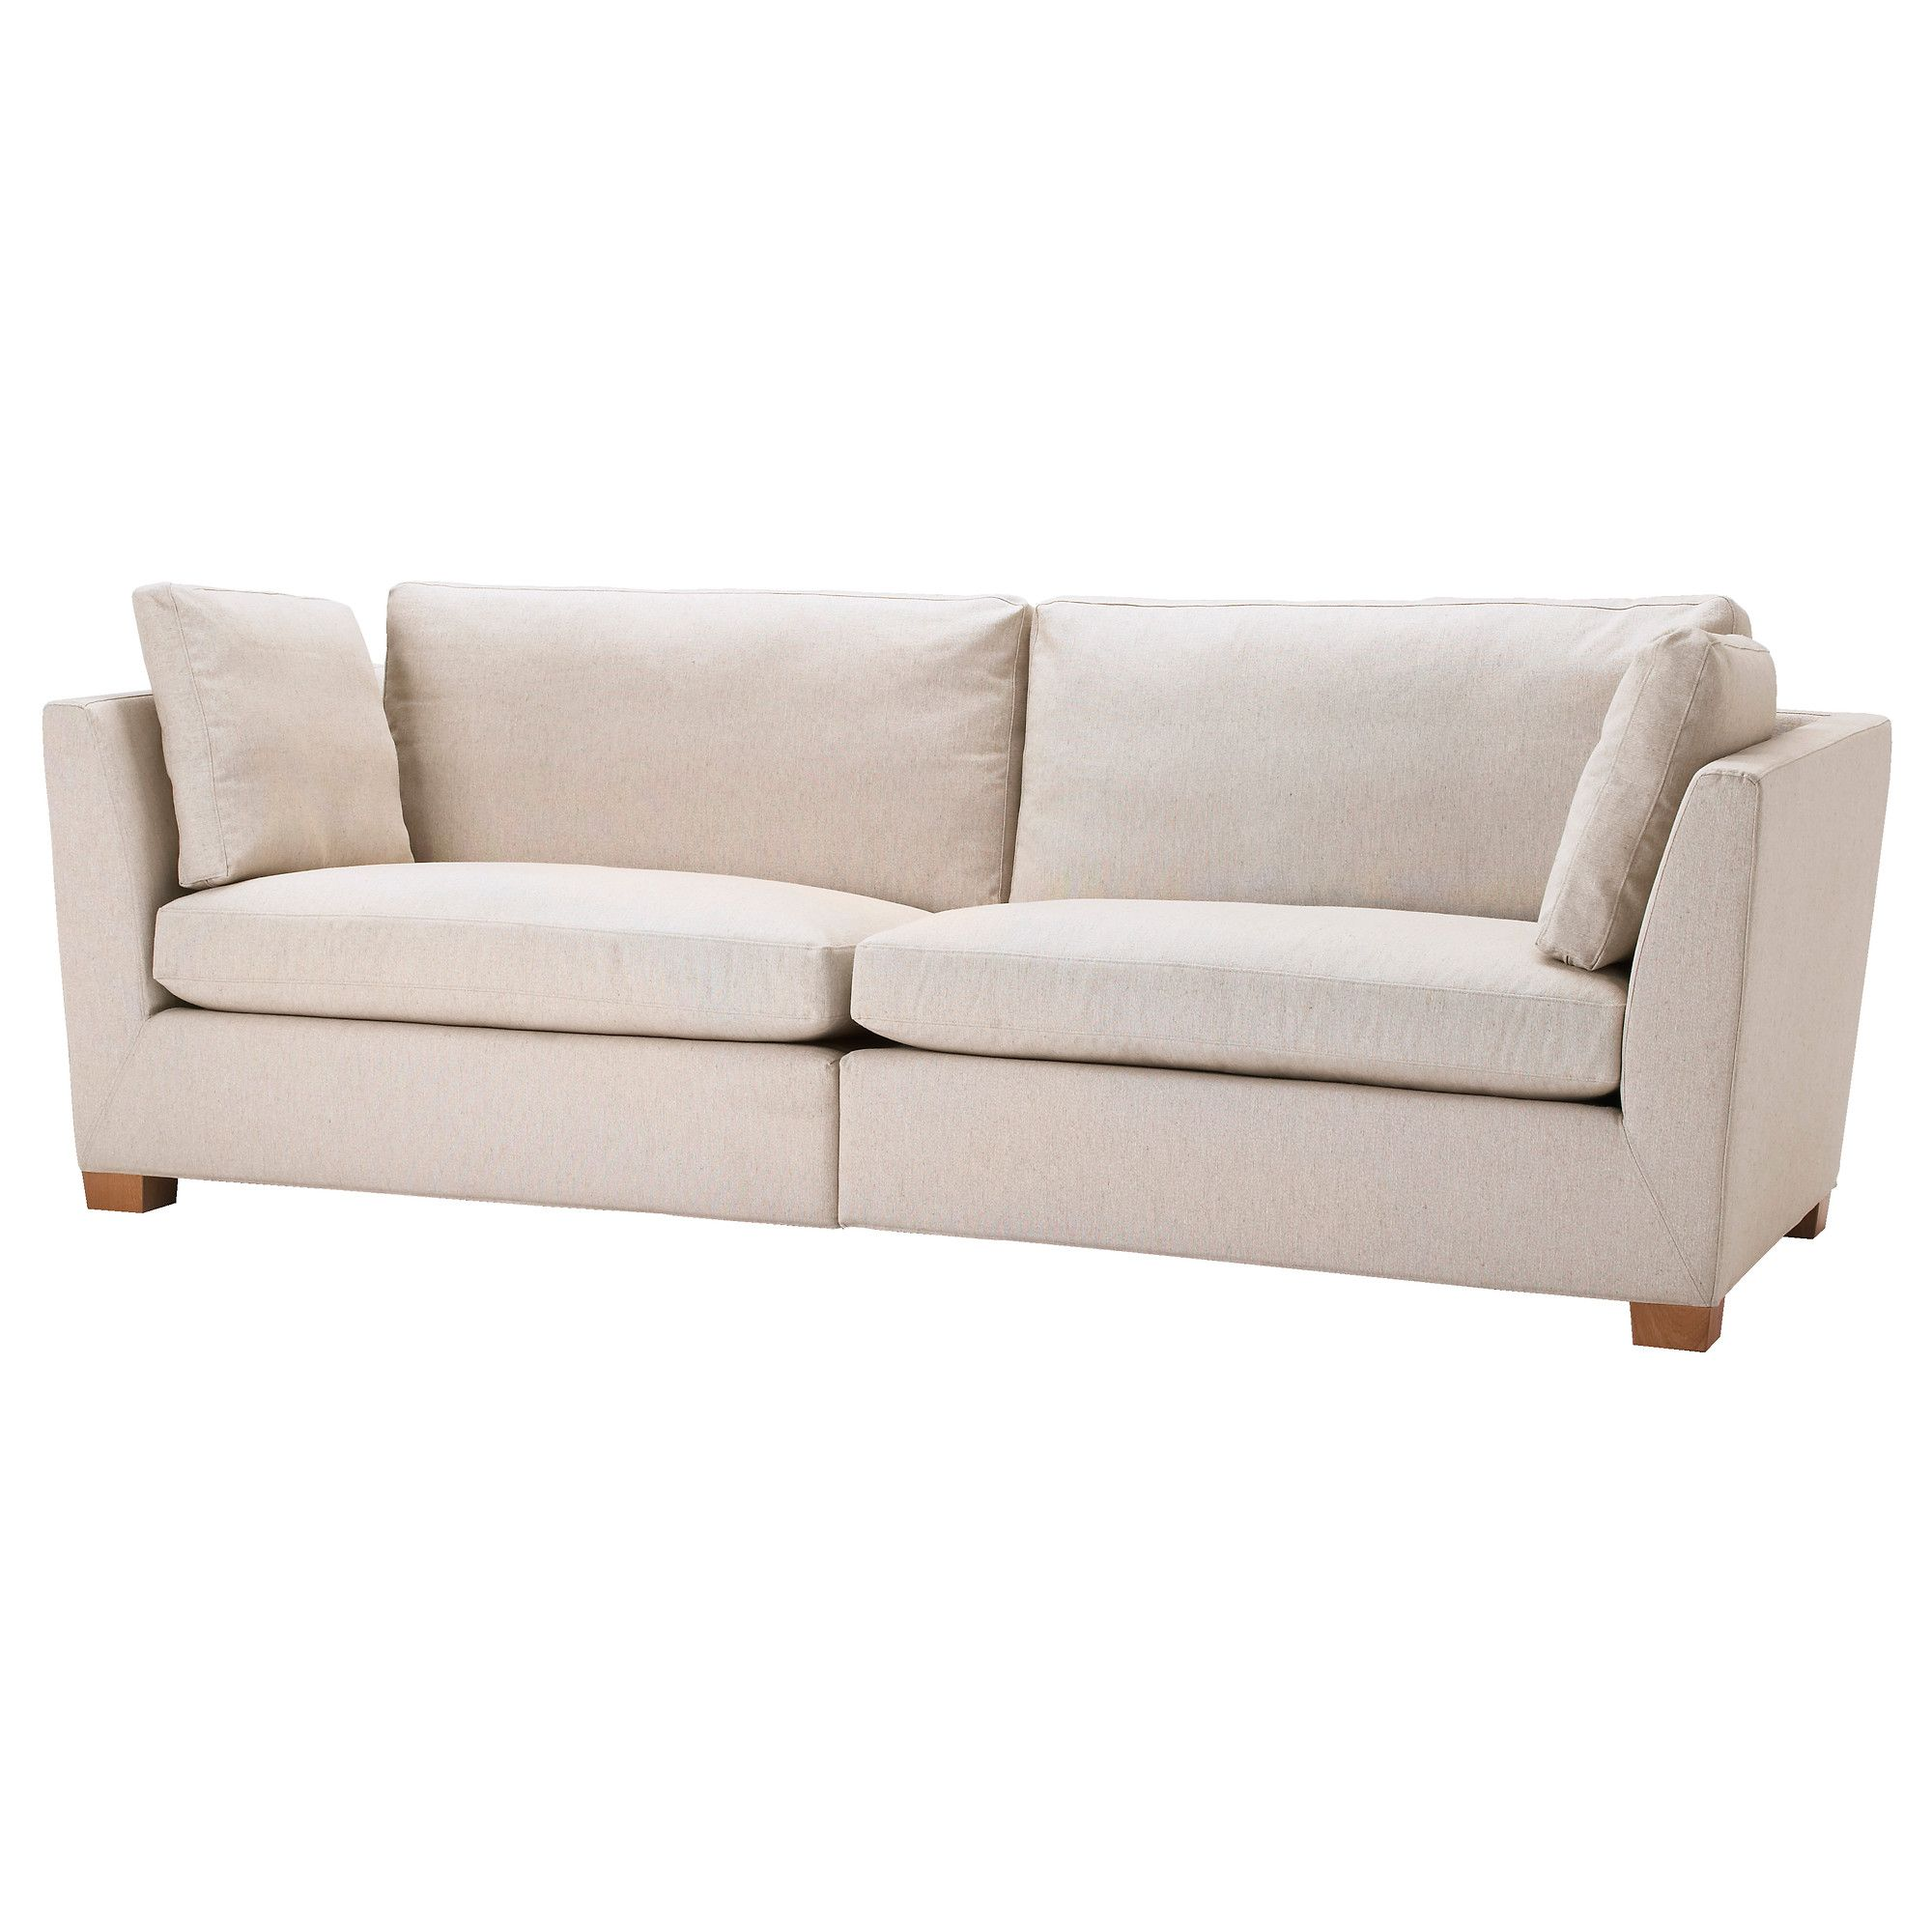 Ikea Us Furniture And Home Furnishings Ikea Stockholm Ikea Sofa Ikea Stockholm Sofa